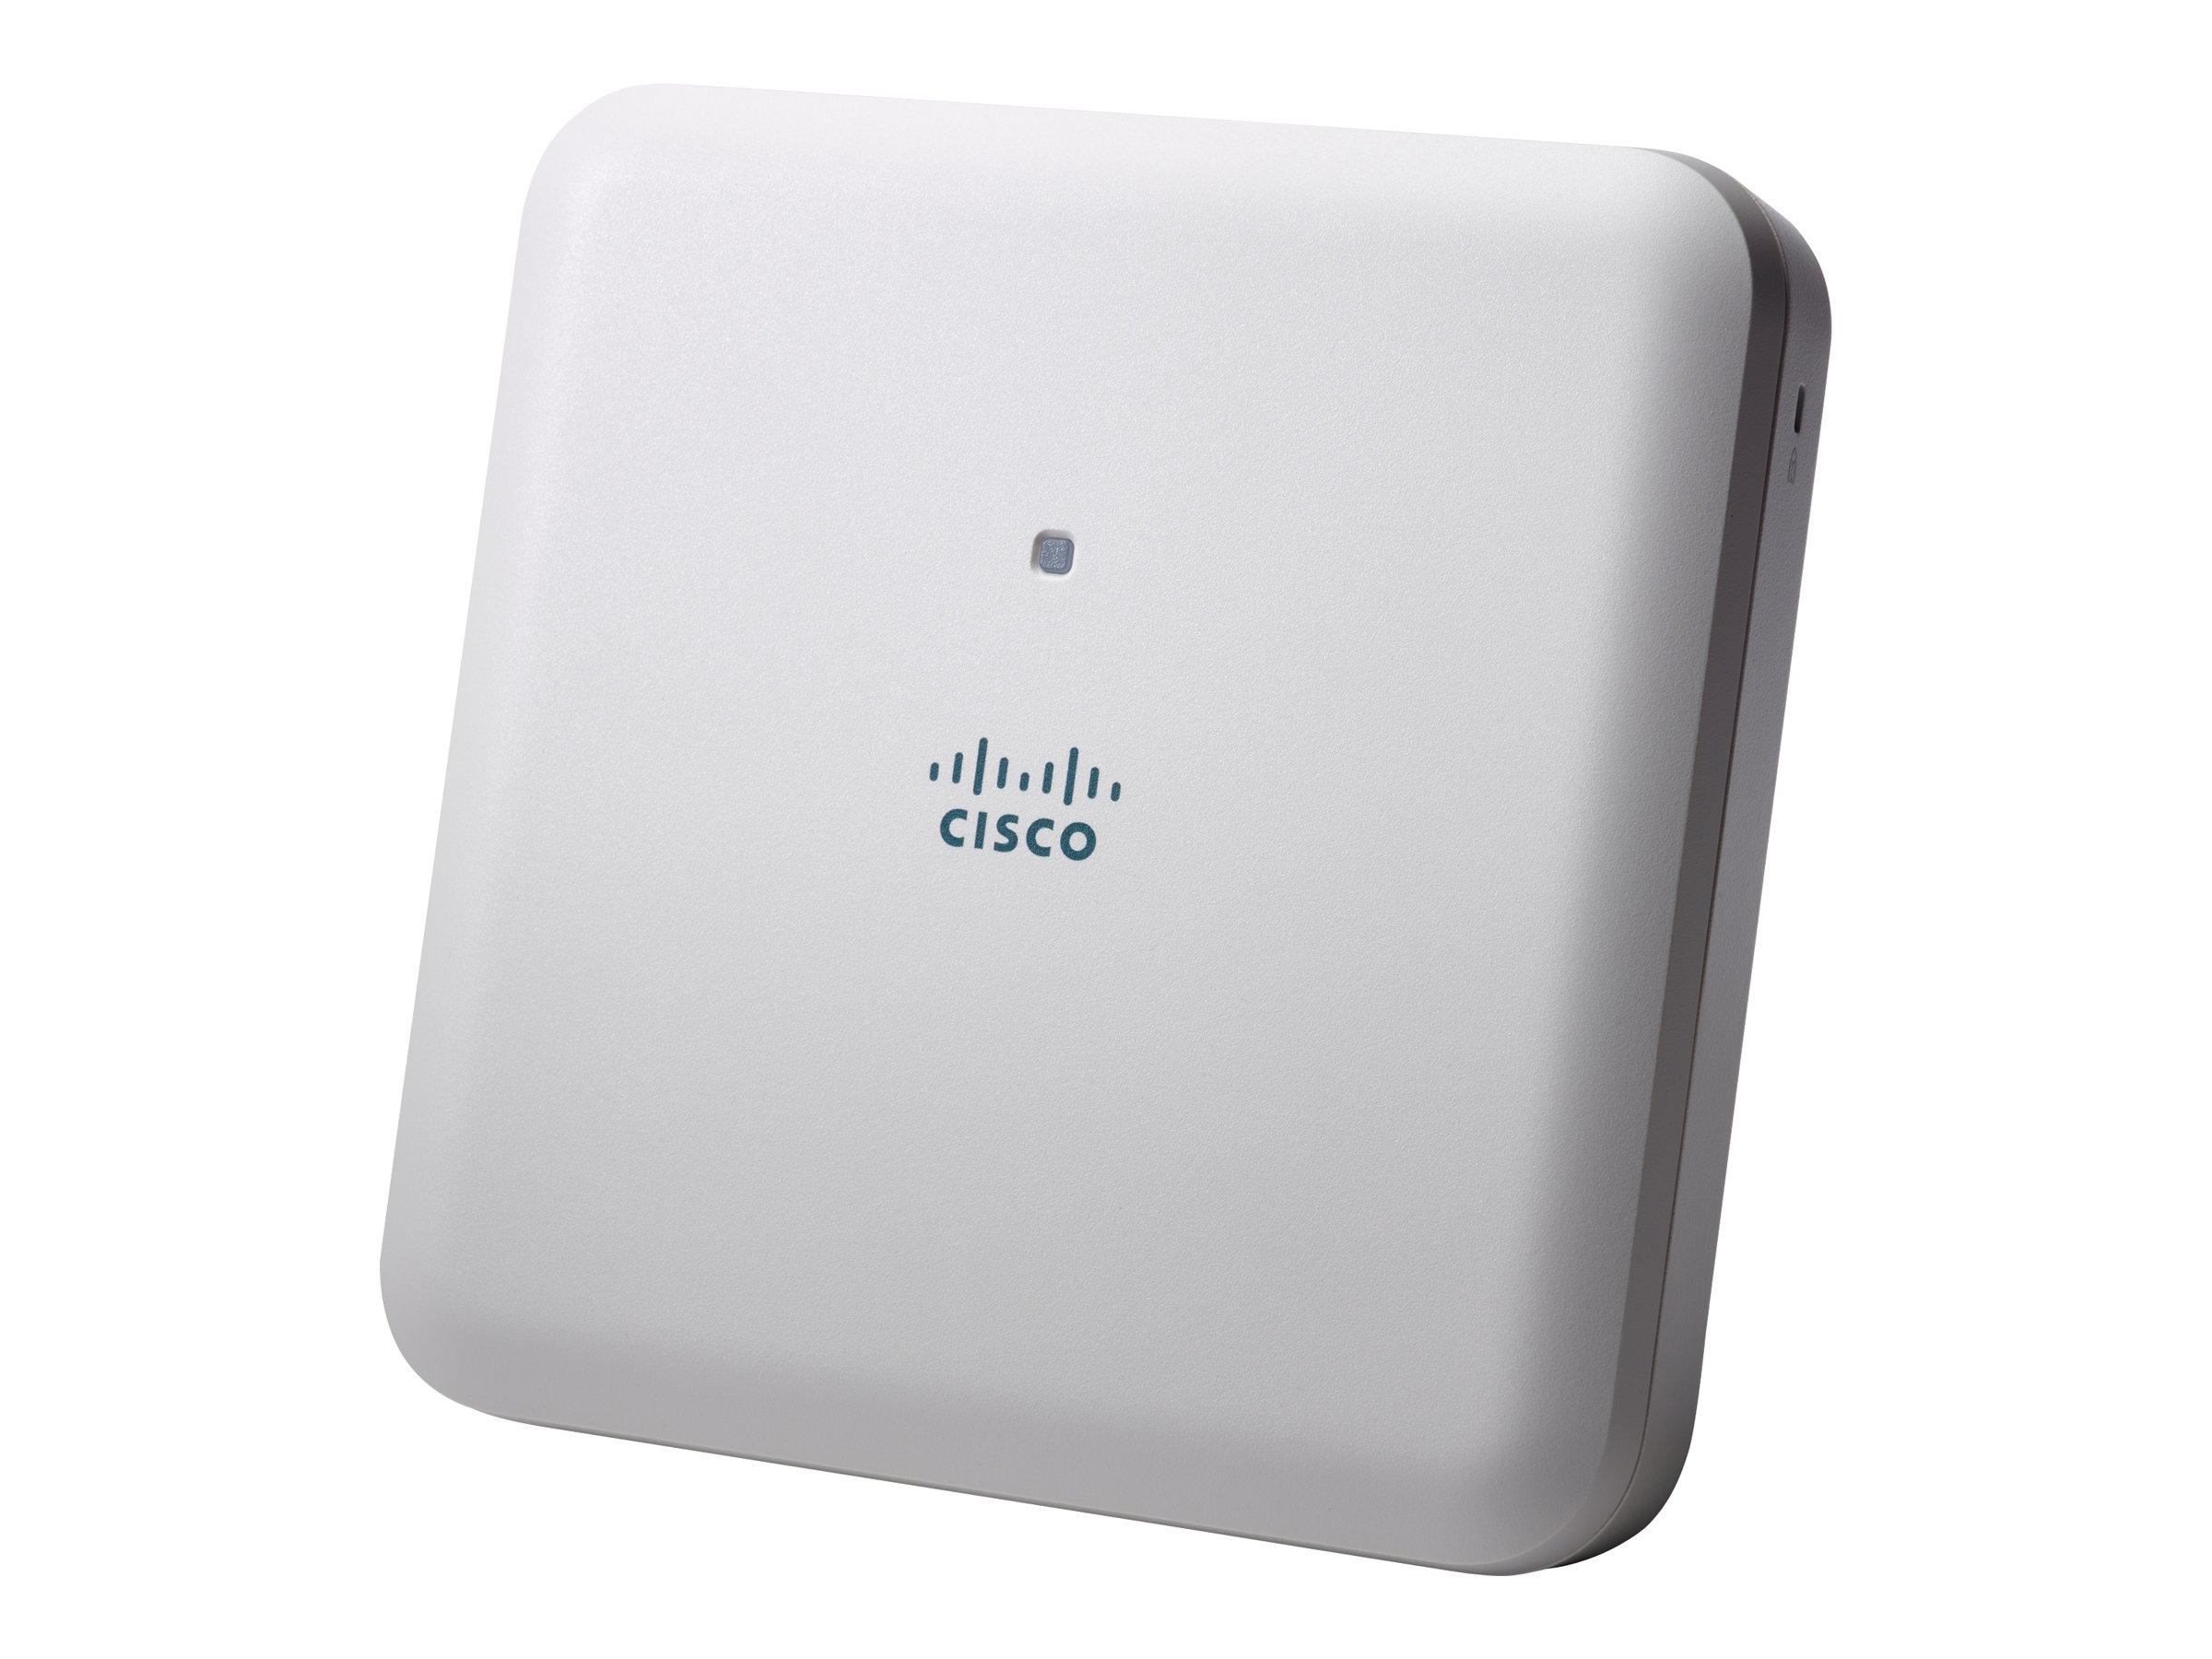 Cisco Aironet 1832I - Drahtlose Basisstation